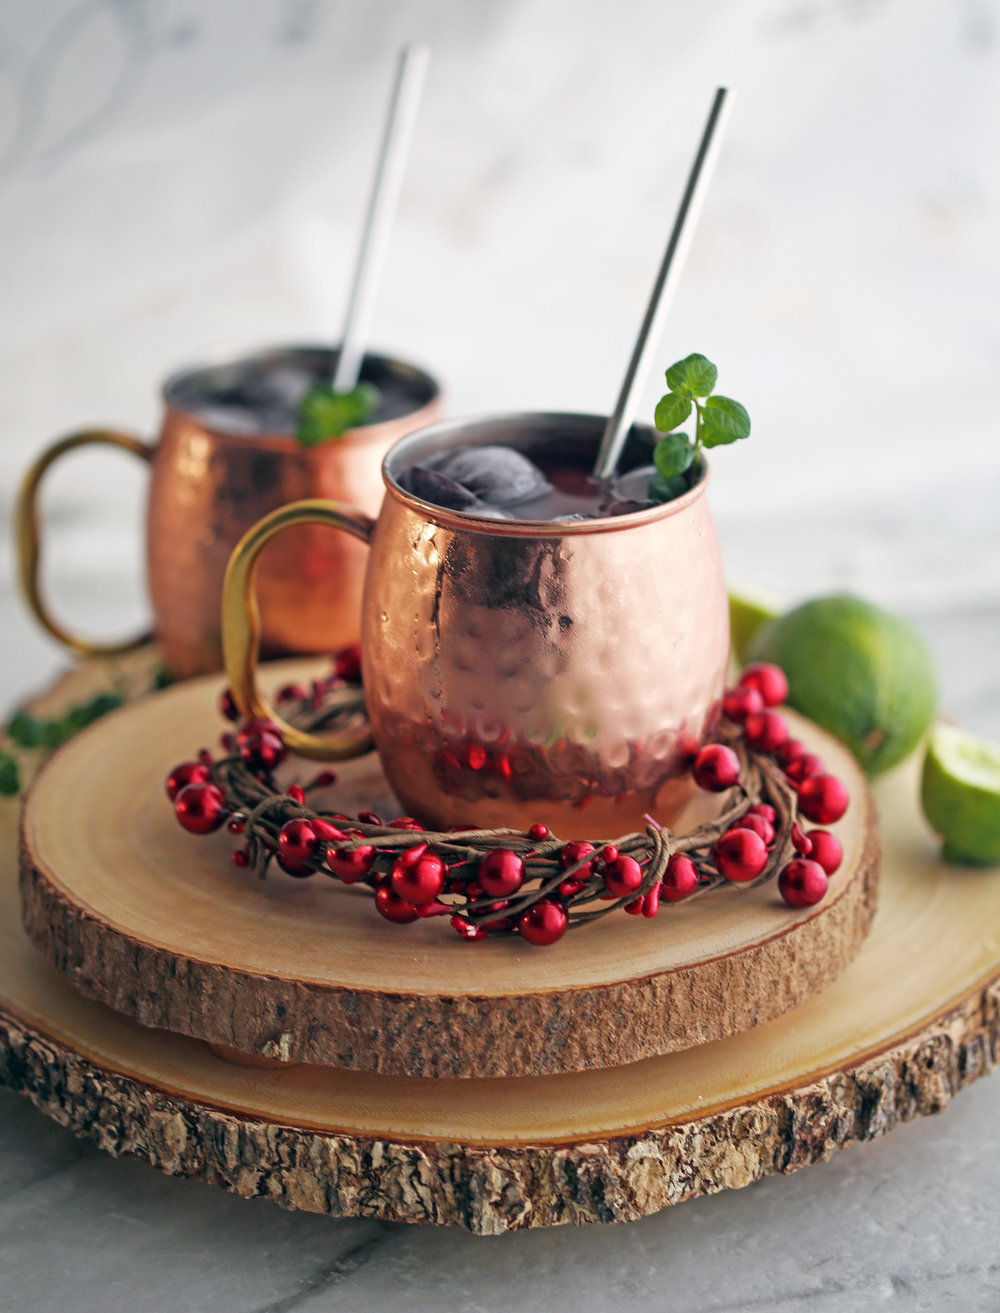 Two Pomegranate Honey Moscow Mule cocktails in copper mugs on wood slabs.